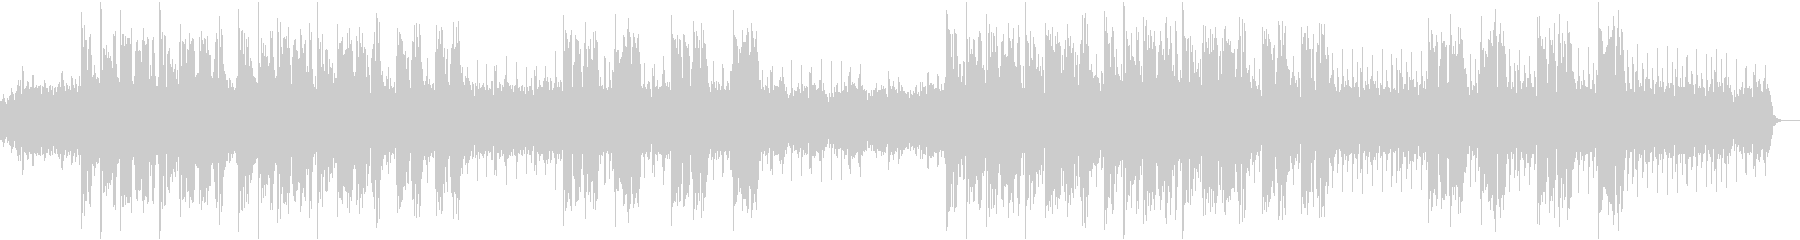 Country, woman, english, slow, guitar's unreproduced waveform